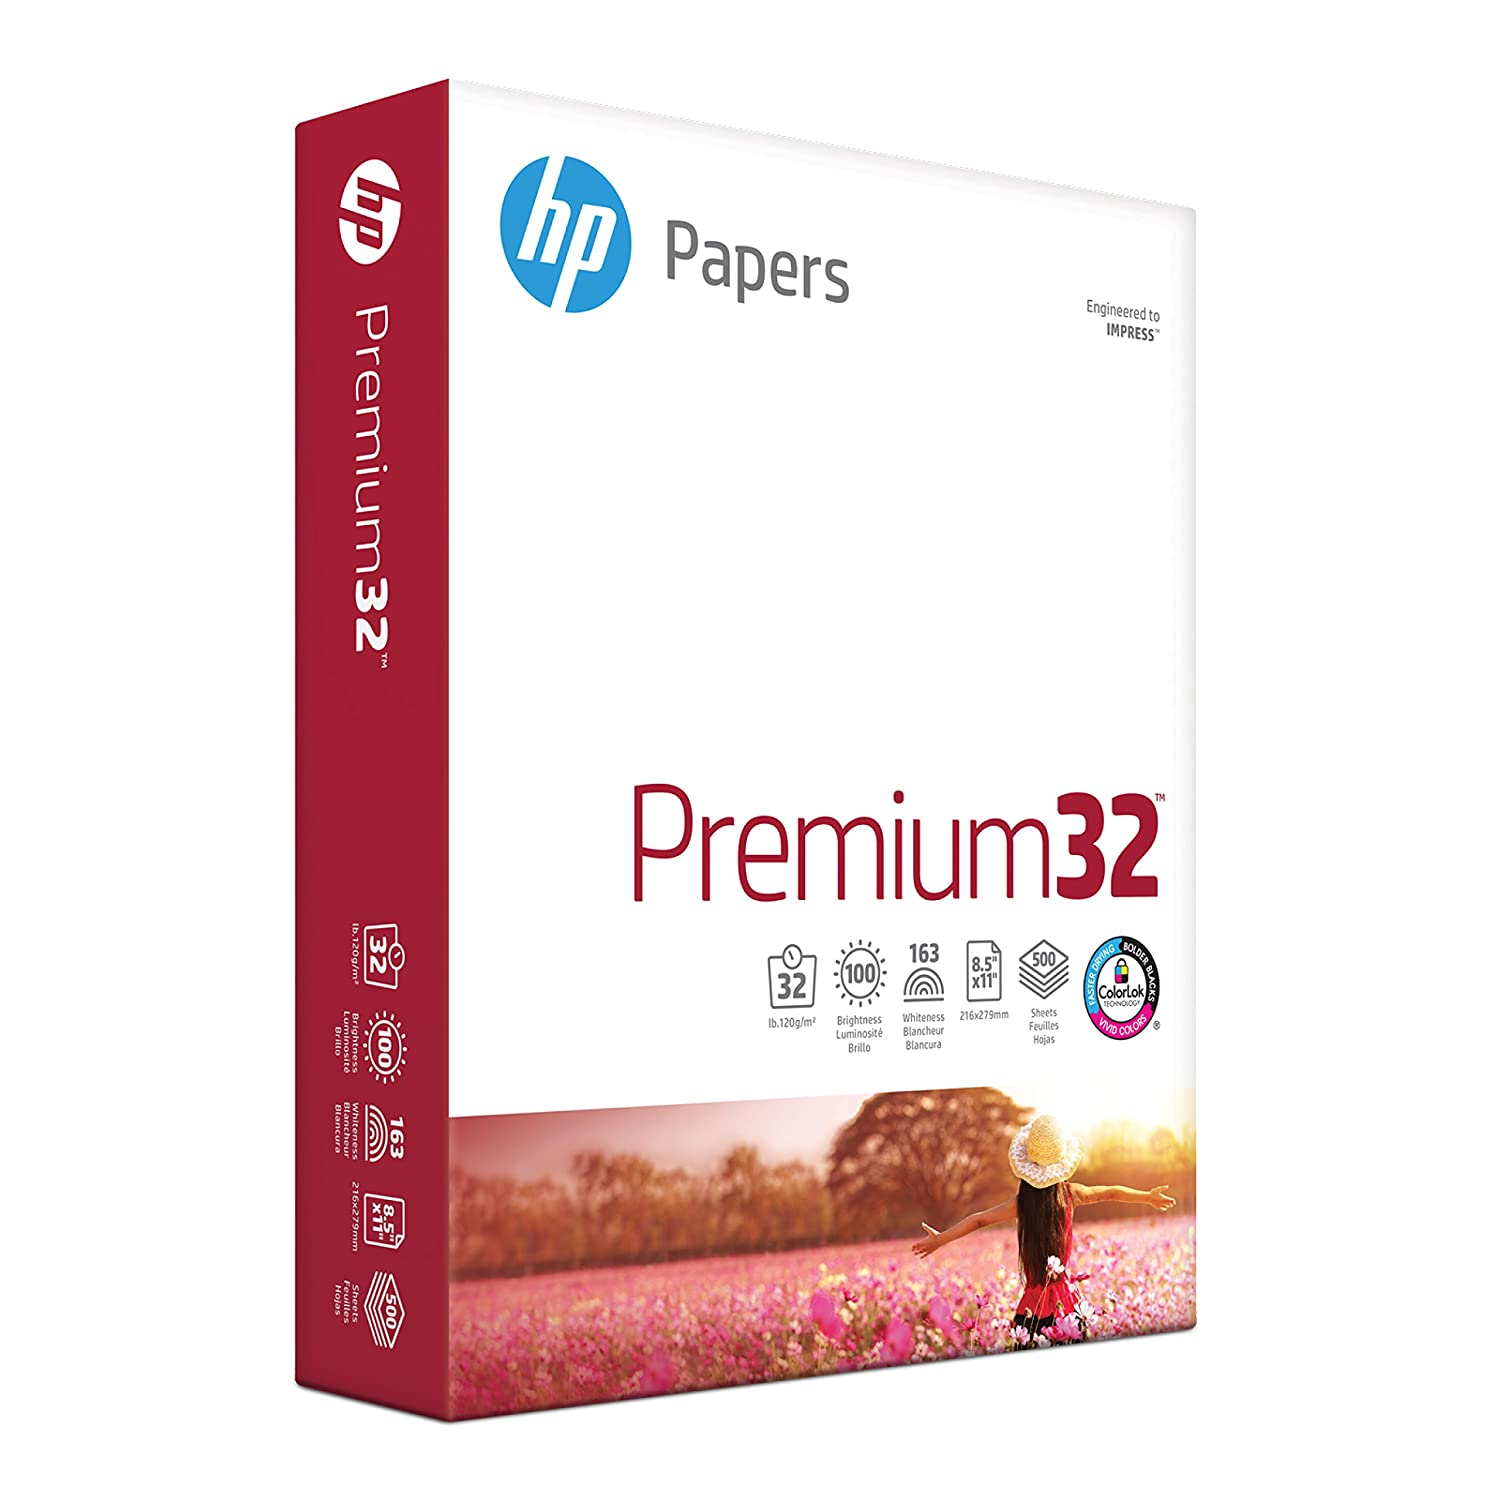 HP Premium 32lb Presentation Paper, 8.5x 11, 1 Ream, 500 Sheets, Made in USA From Forest Stewardship Council (FSC) Certified Resources, 100 Bright, Acid Free, Engineered for HP Compatibility, 113100R